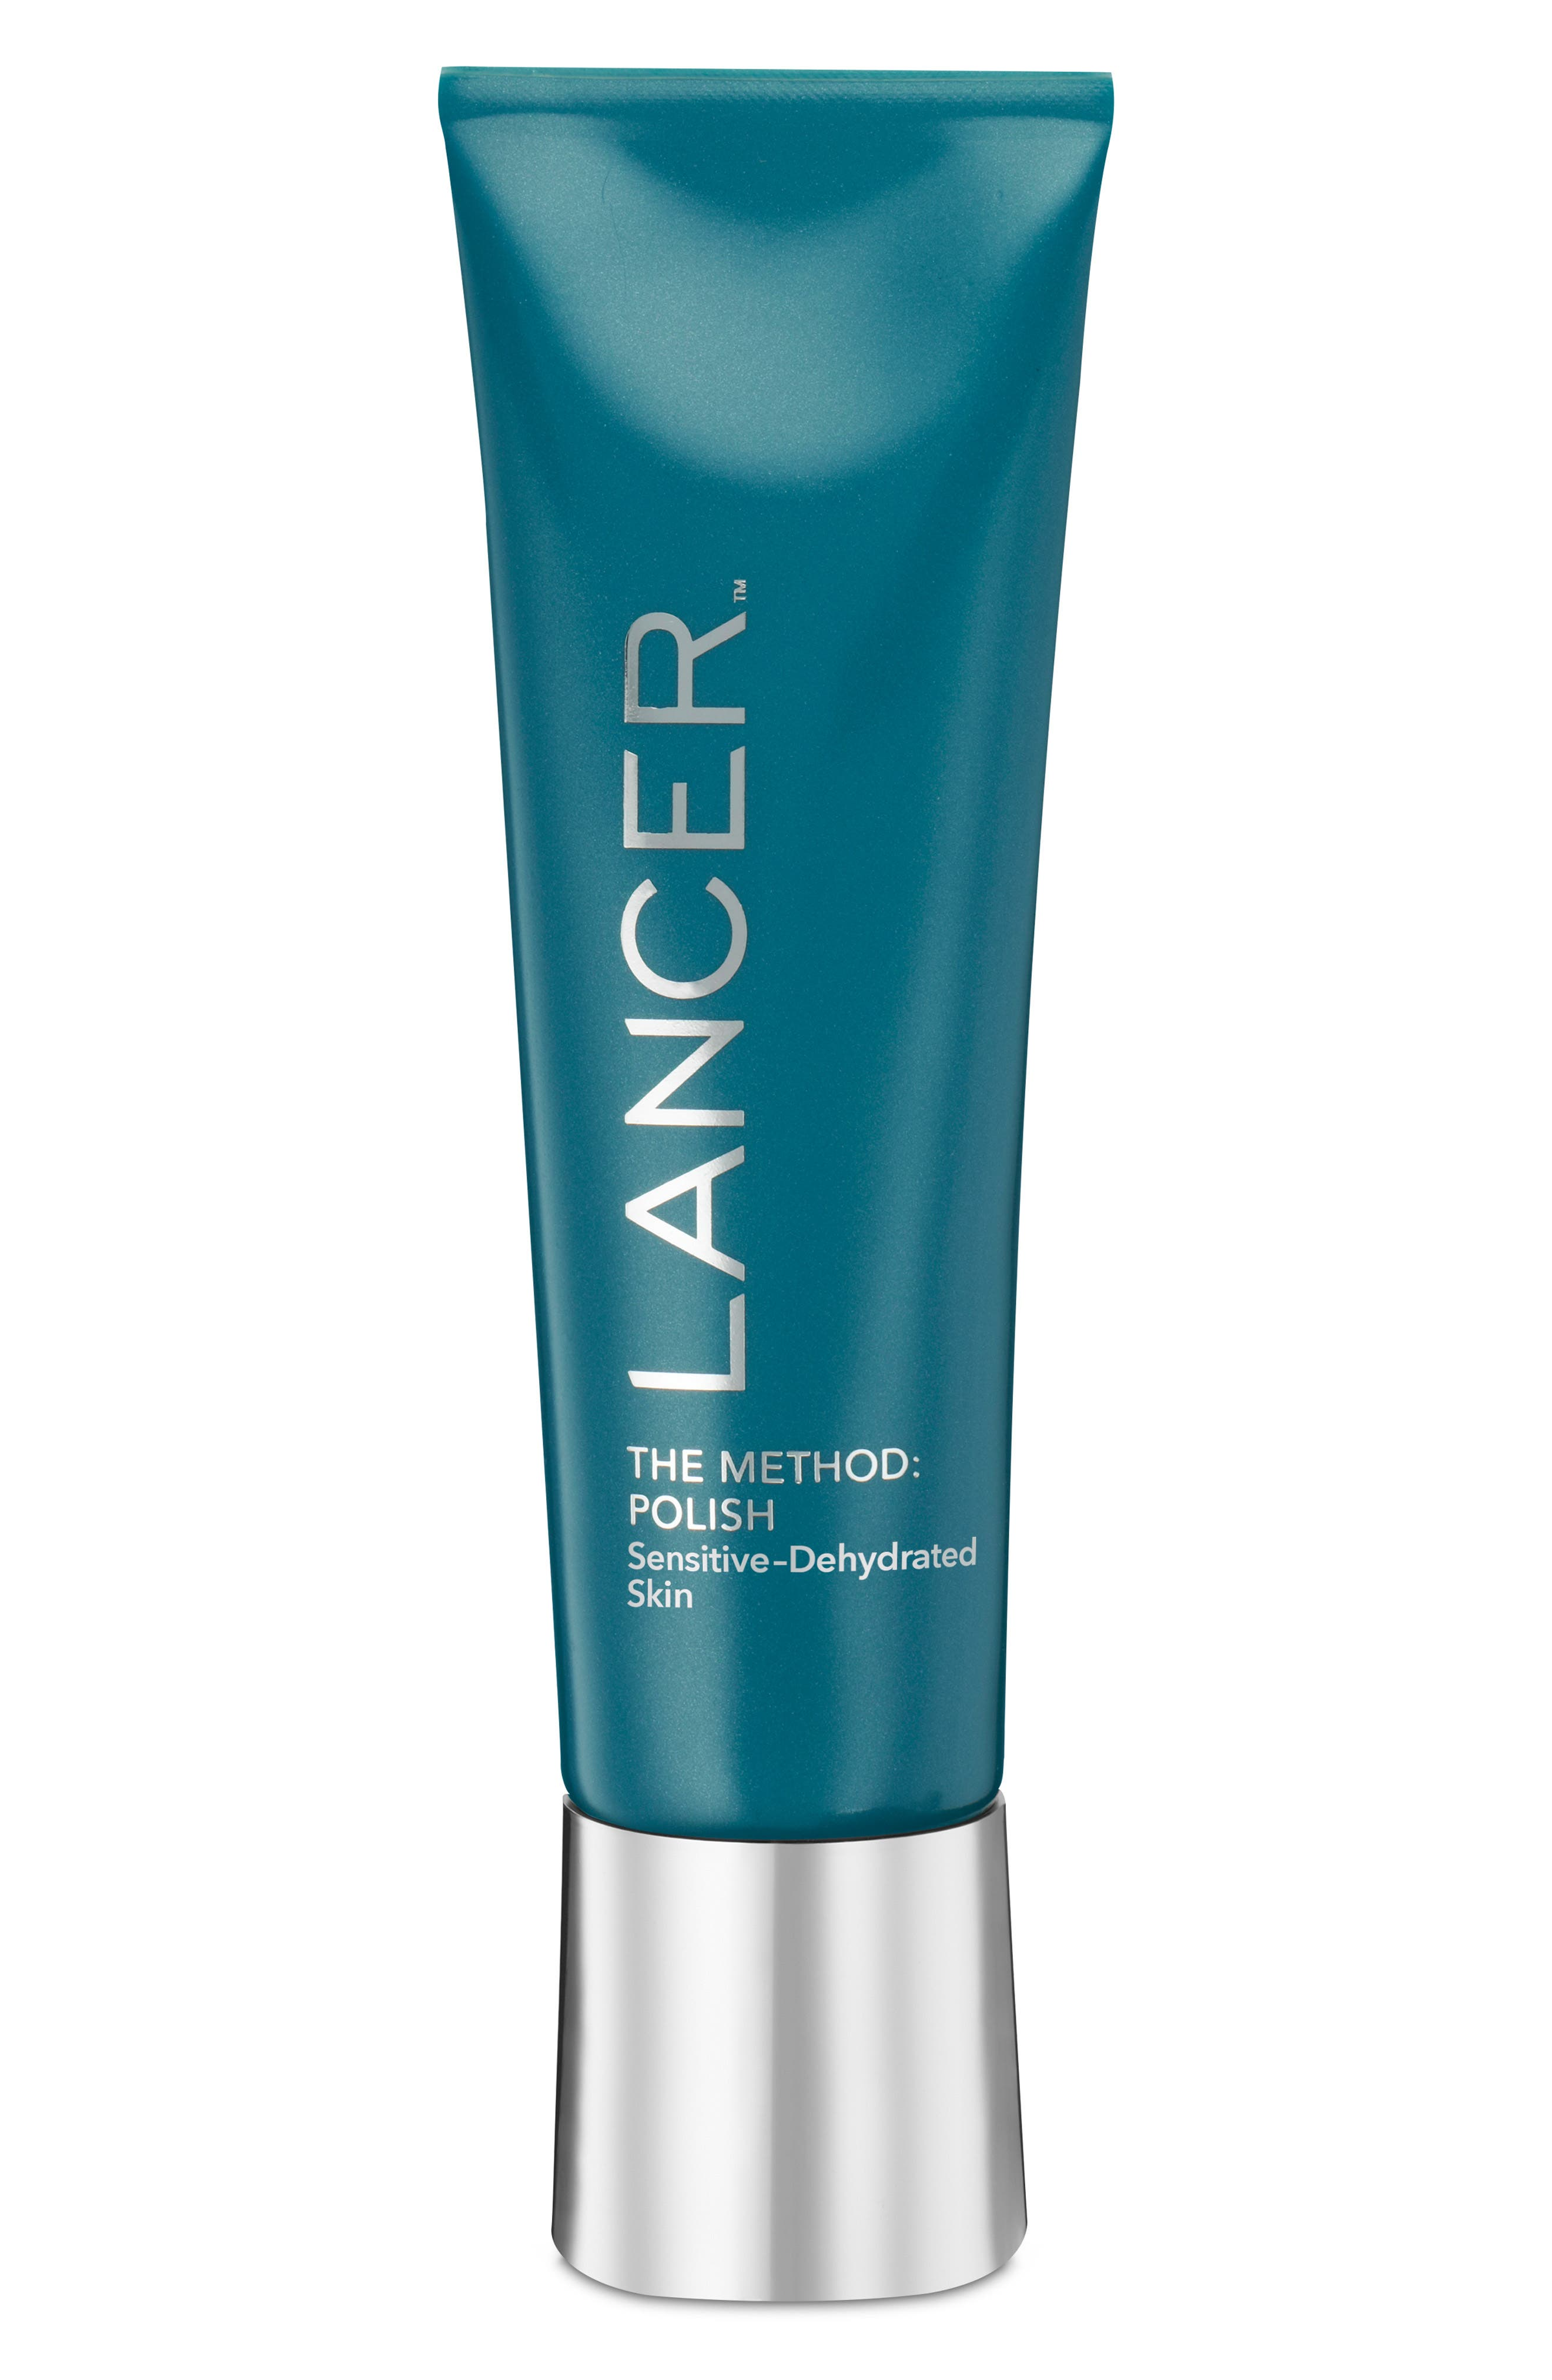 The Method: Polish Exfoliator For Sensitive To Dehydrated Skin